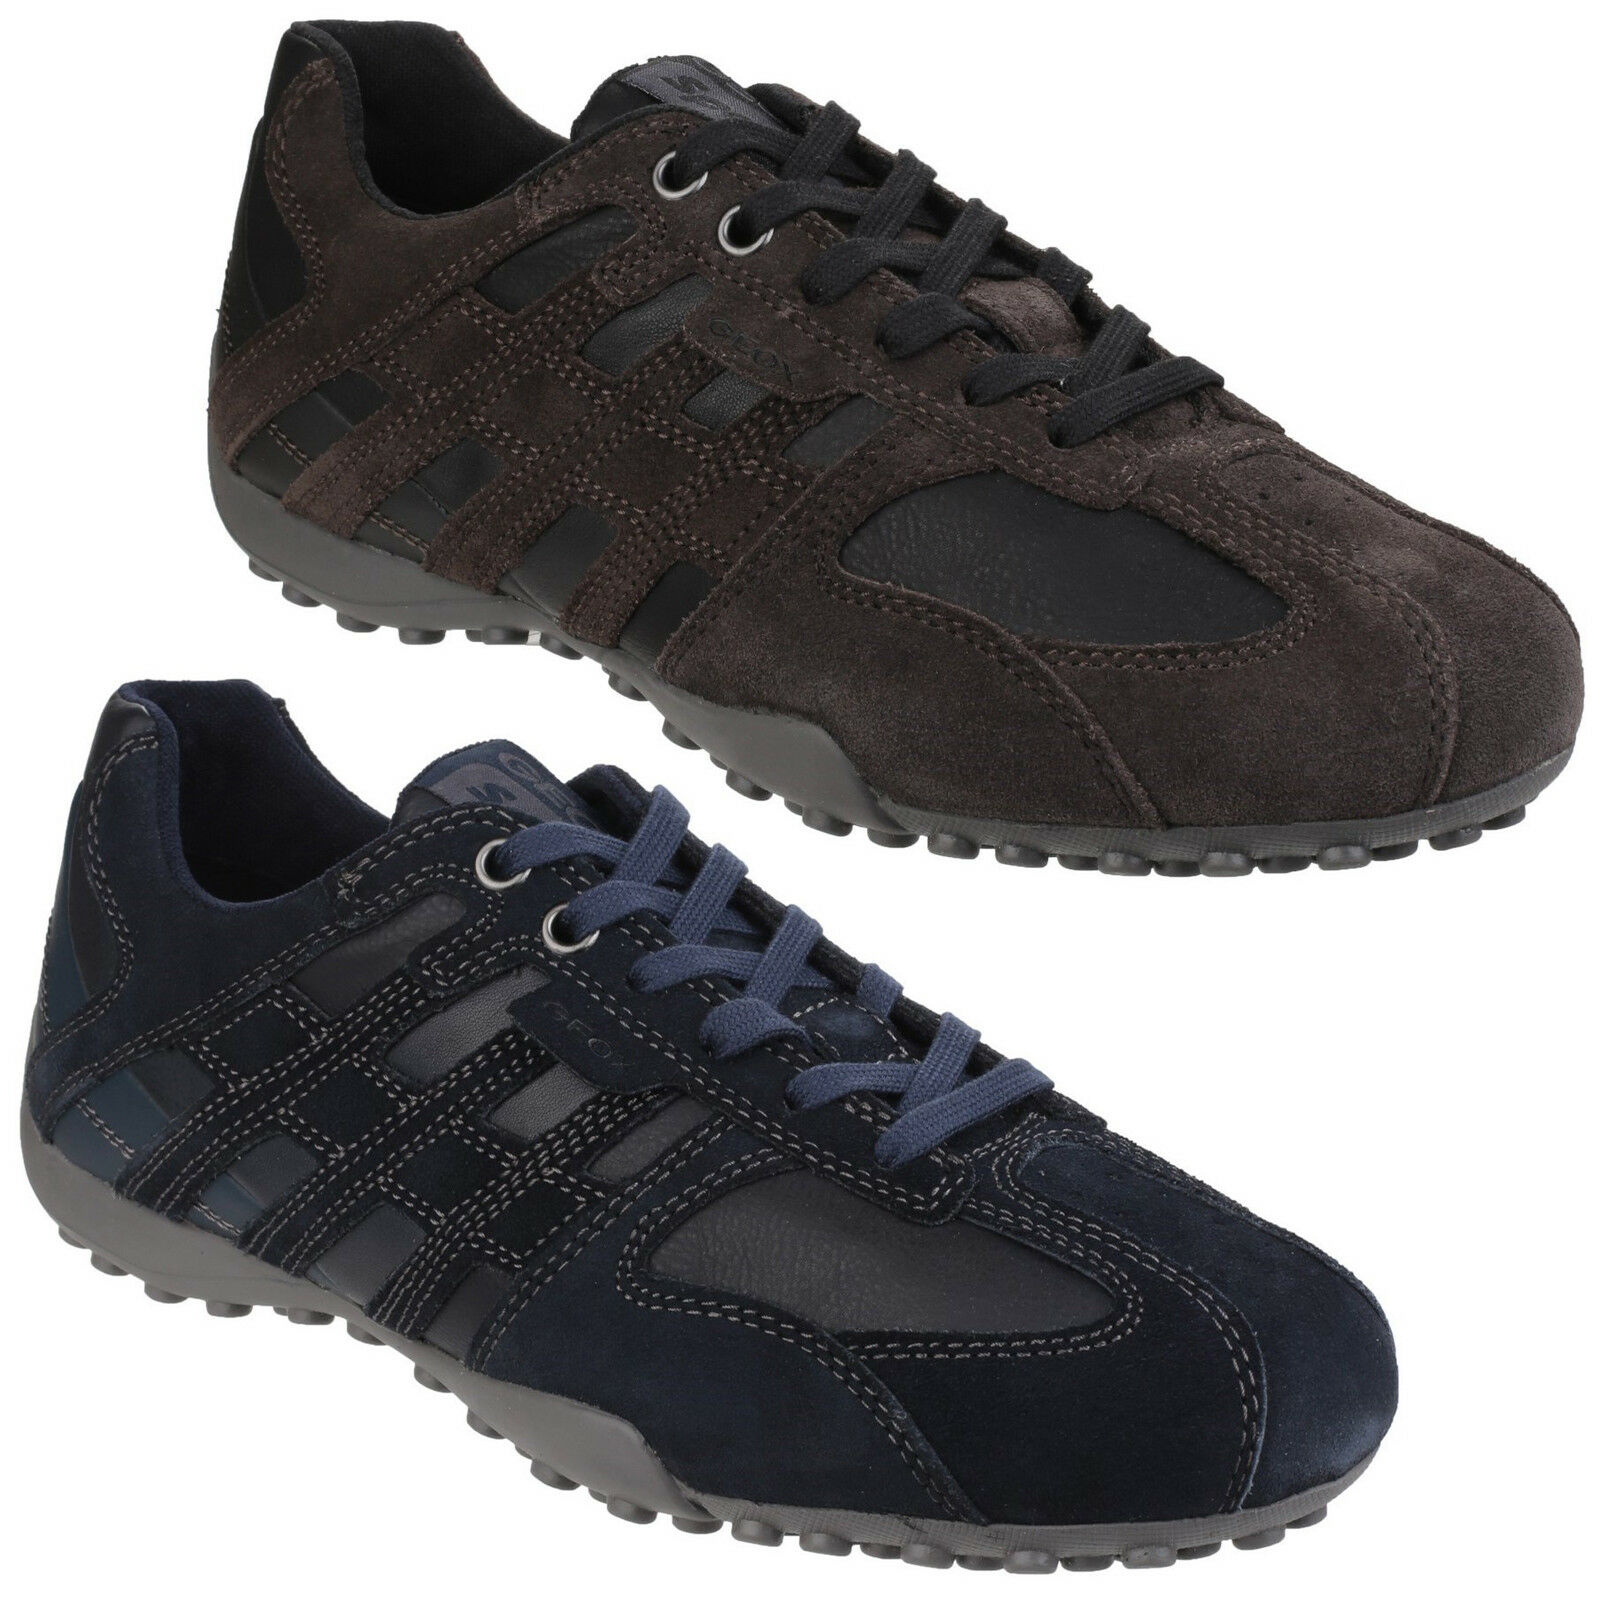 Geox Snake Trainers Mens cushioned Suede shoes Lace Up UK 6.5-10.5